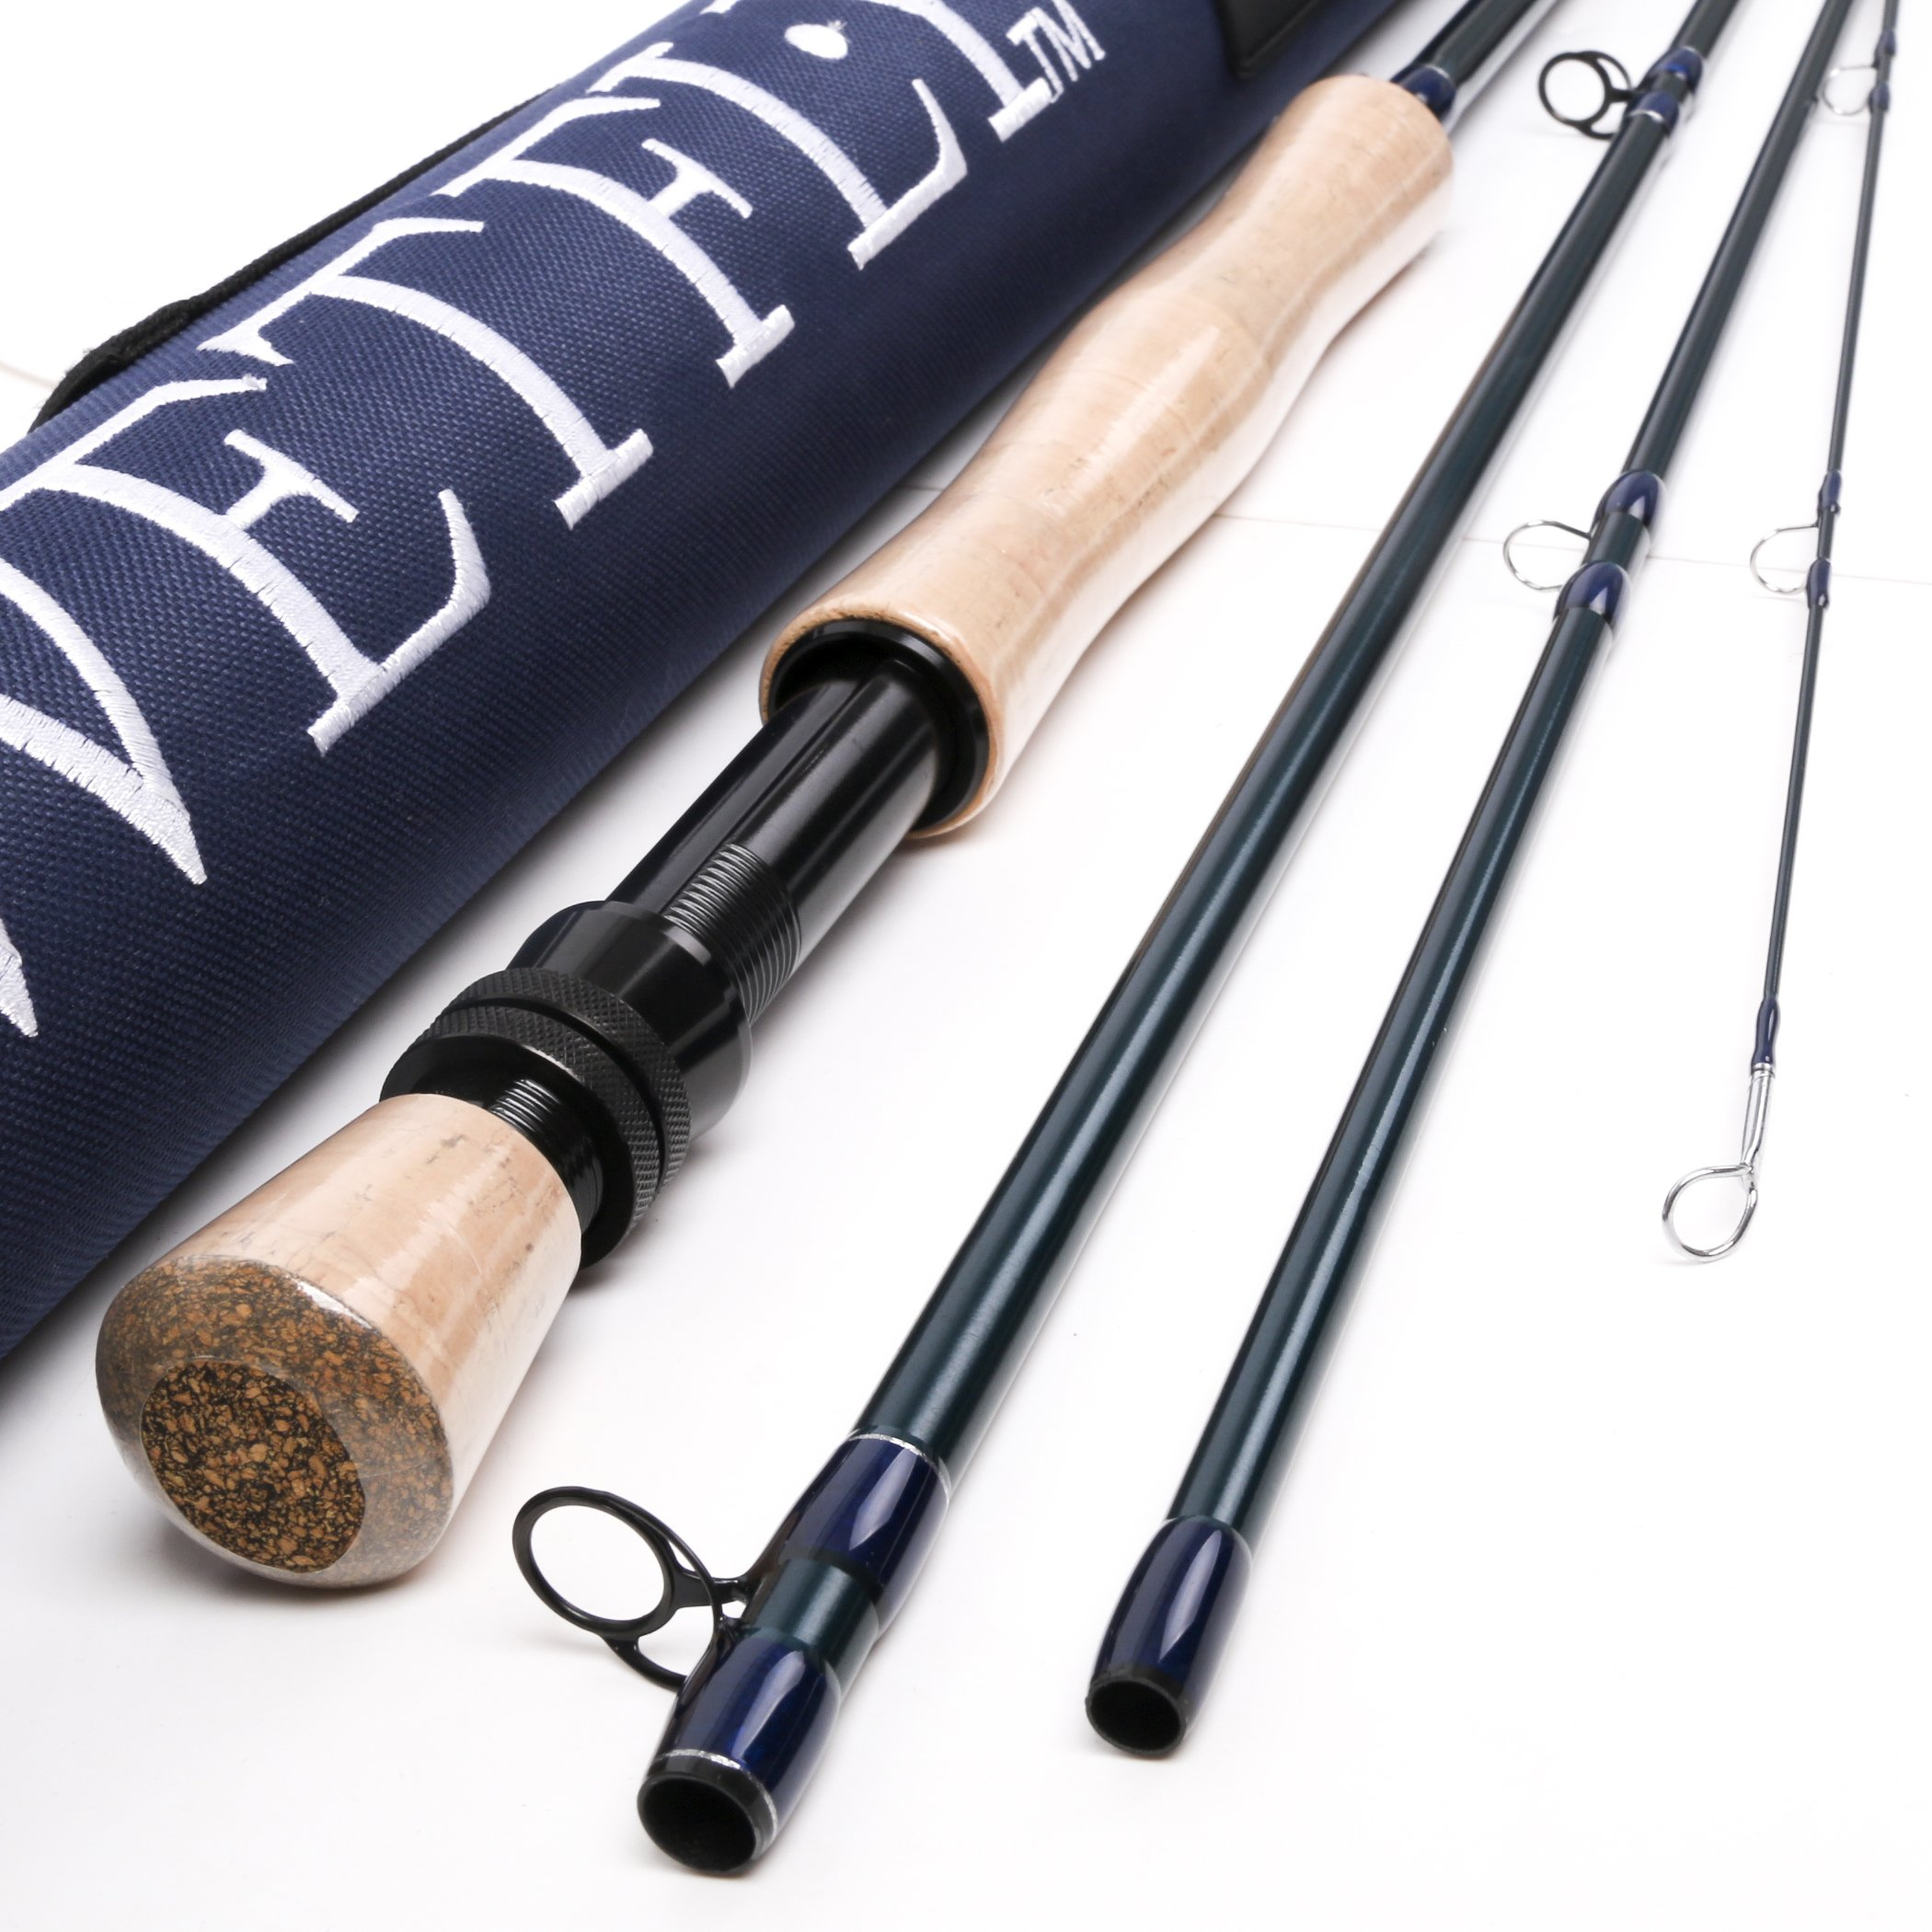 Wetfly Element2 4-piece Fly Fishing Rods (9' 7wt)